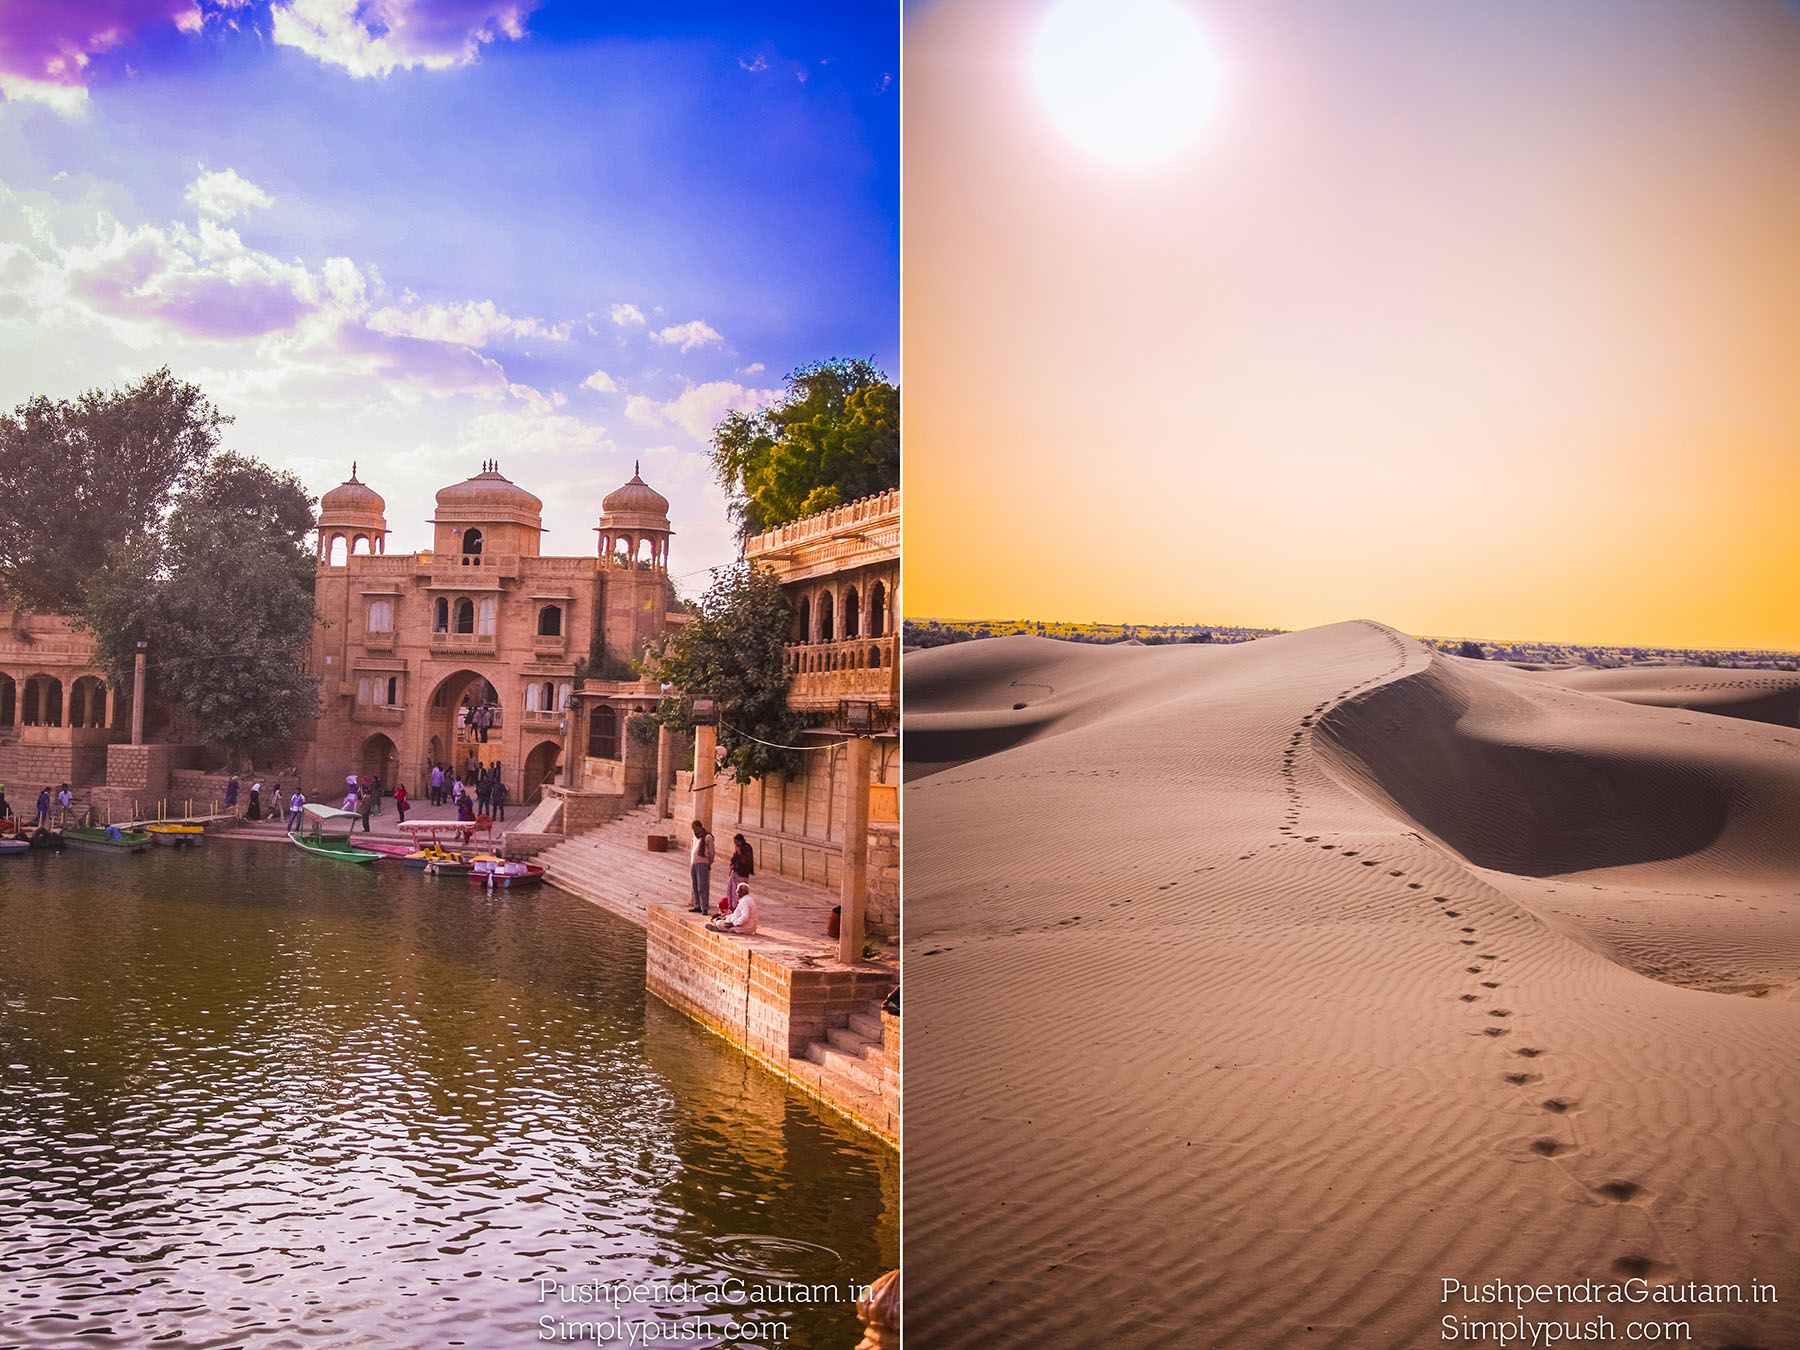 Jaisalmer-rajasthan-desert-lake-pics-india-the-great-indian-desert-pics-best-travel-photographer-pushpendragautam-pics-india